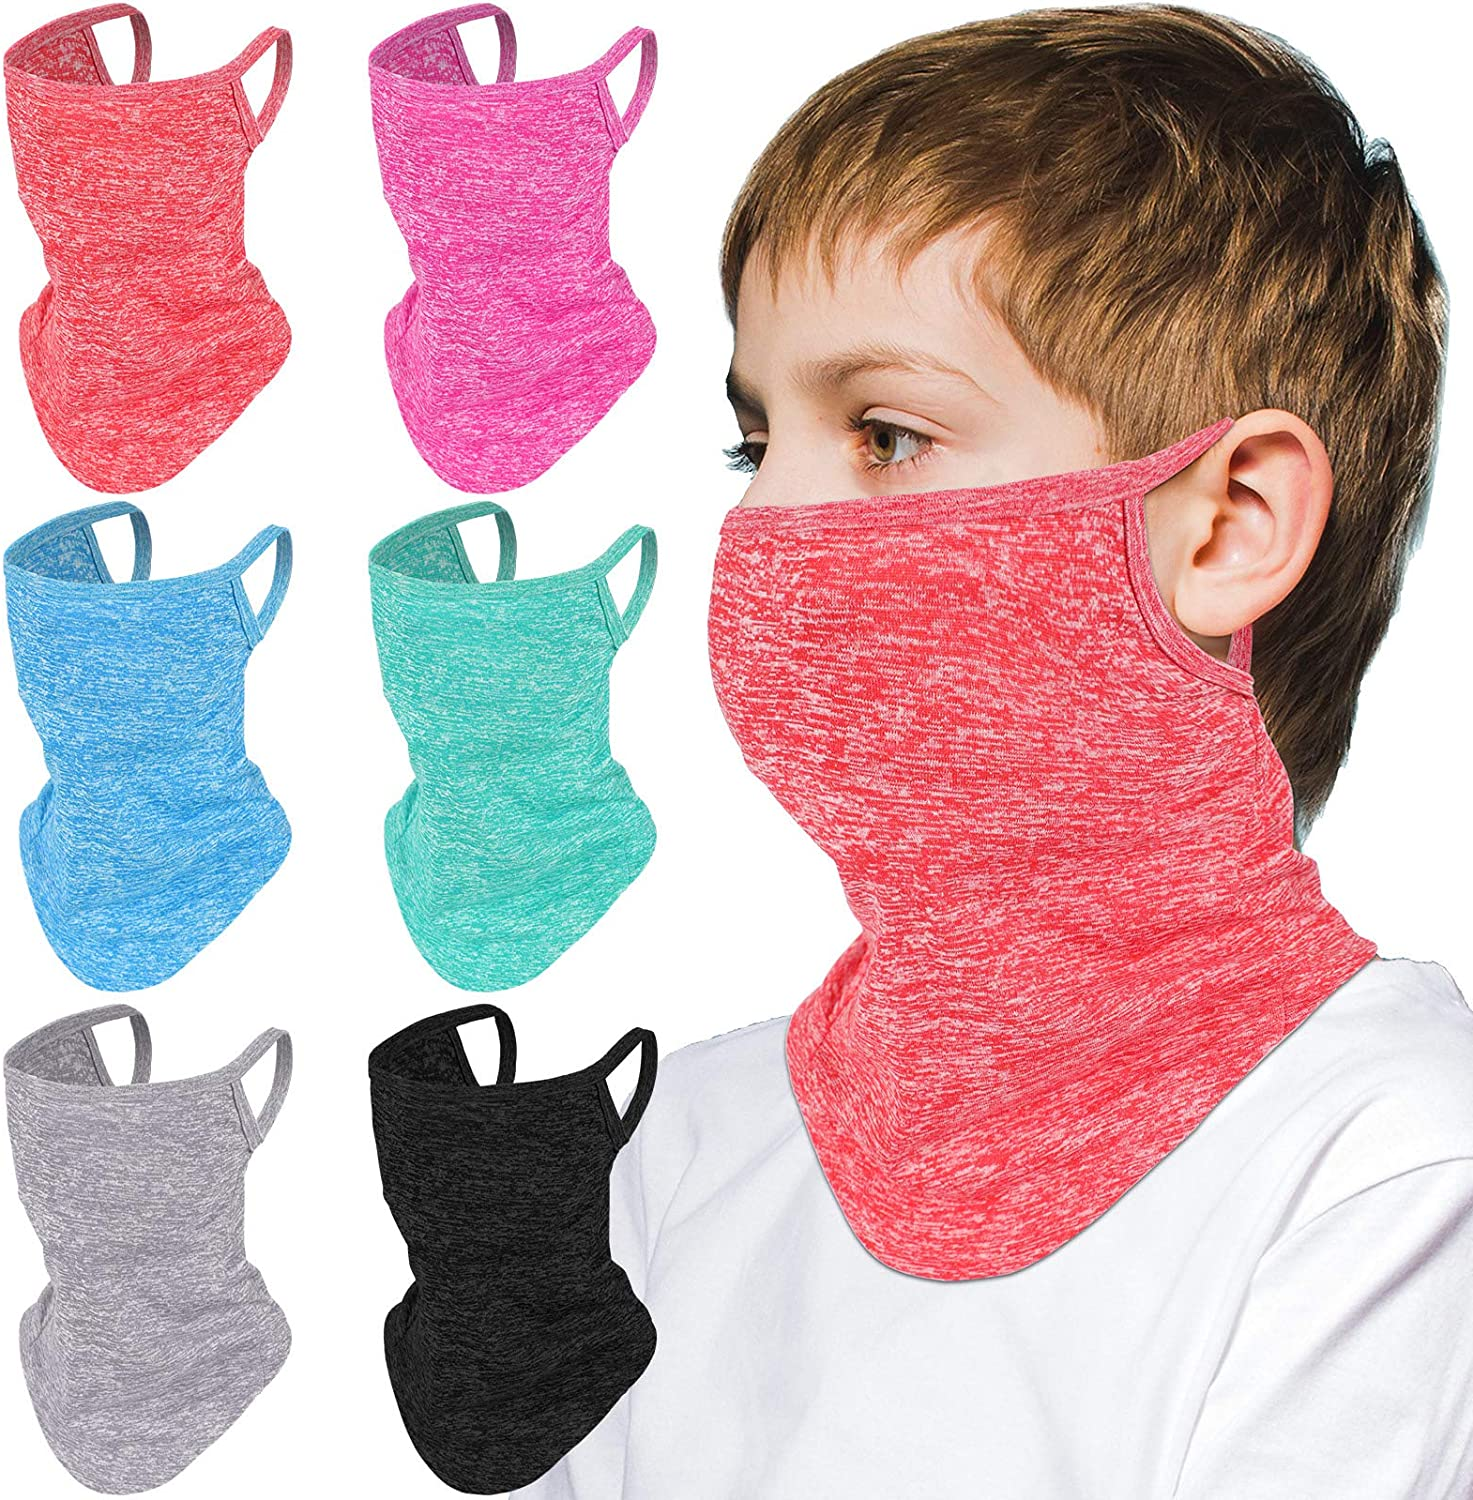 Limited time sale Jeere 6 Pieces Kids Neck Gaiter Sun Covering UV Dedication Protection Face